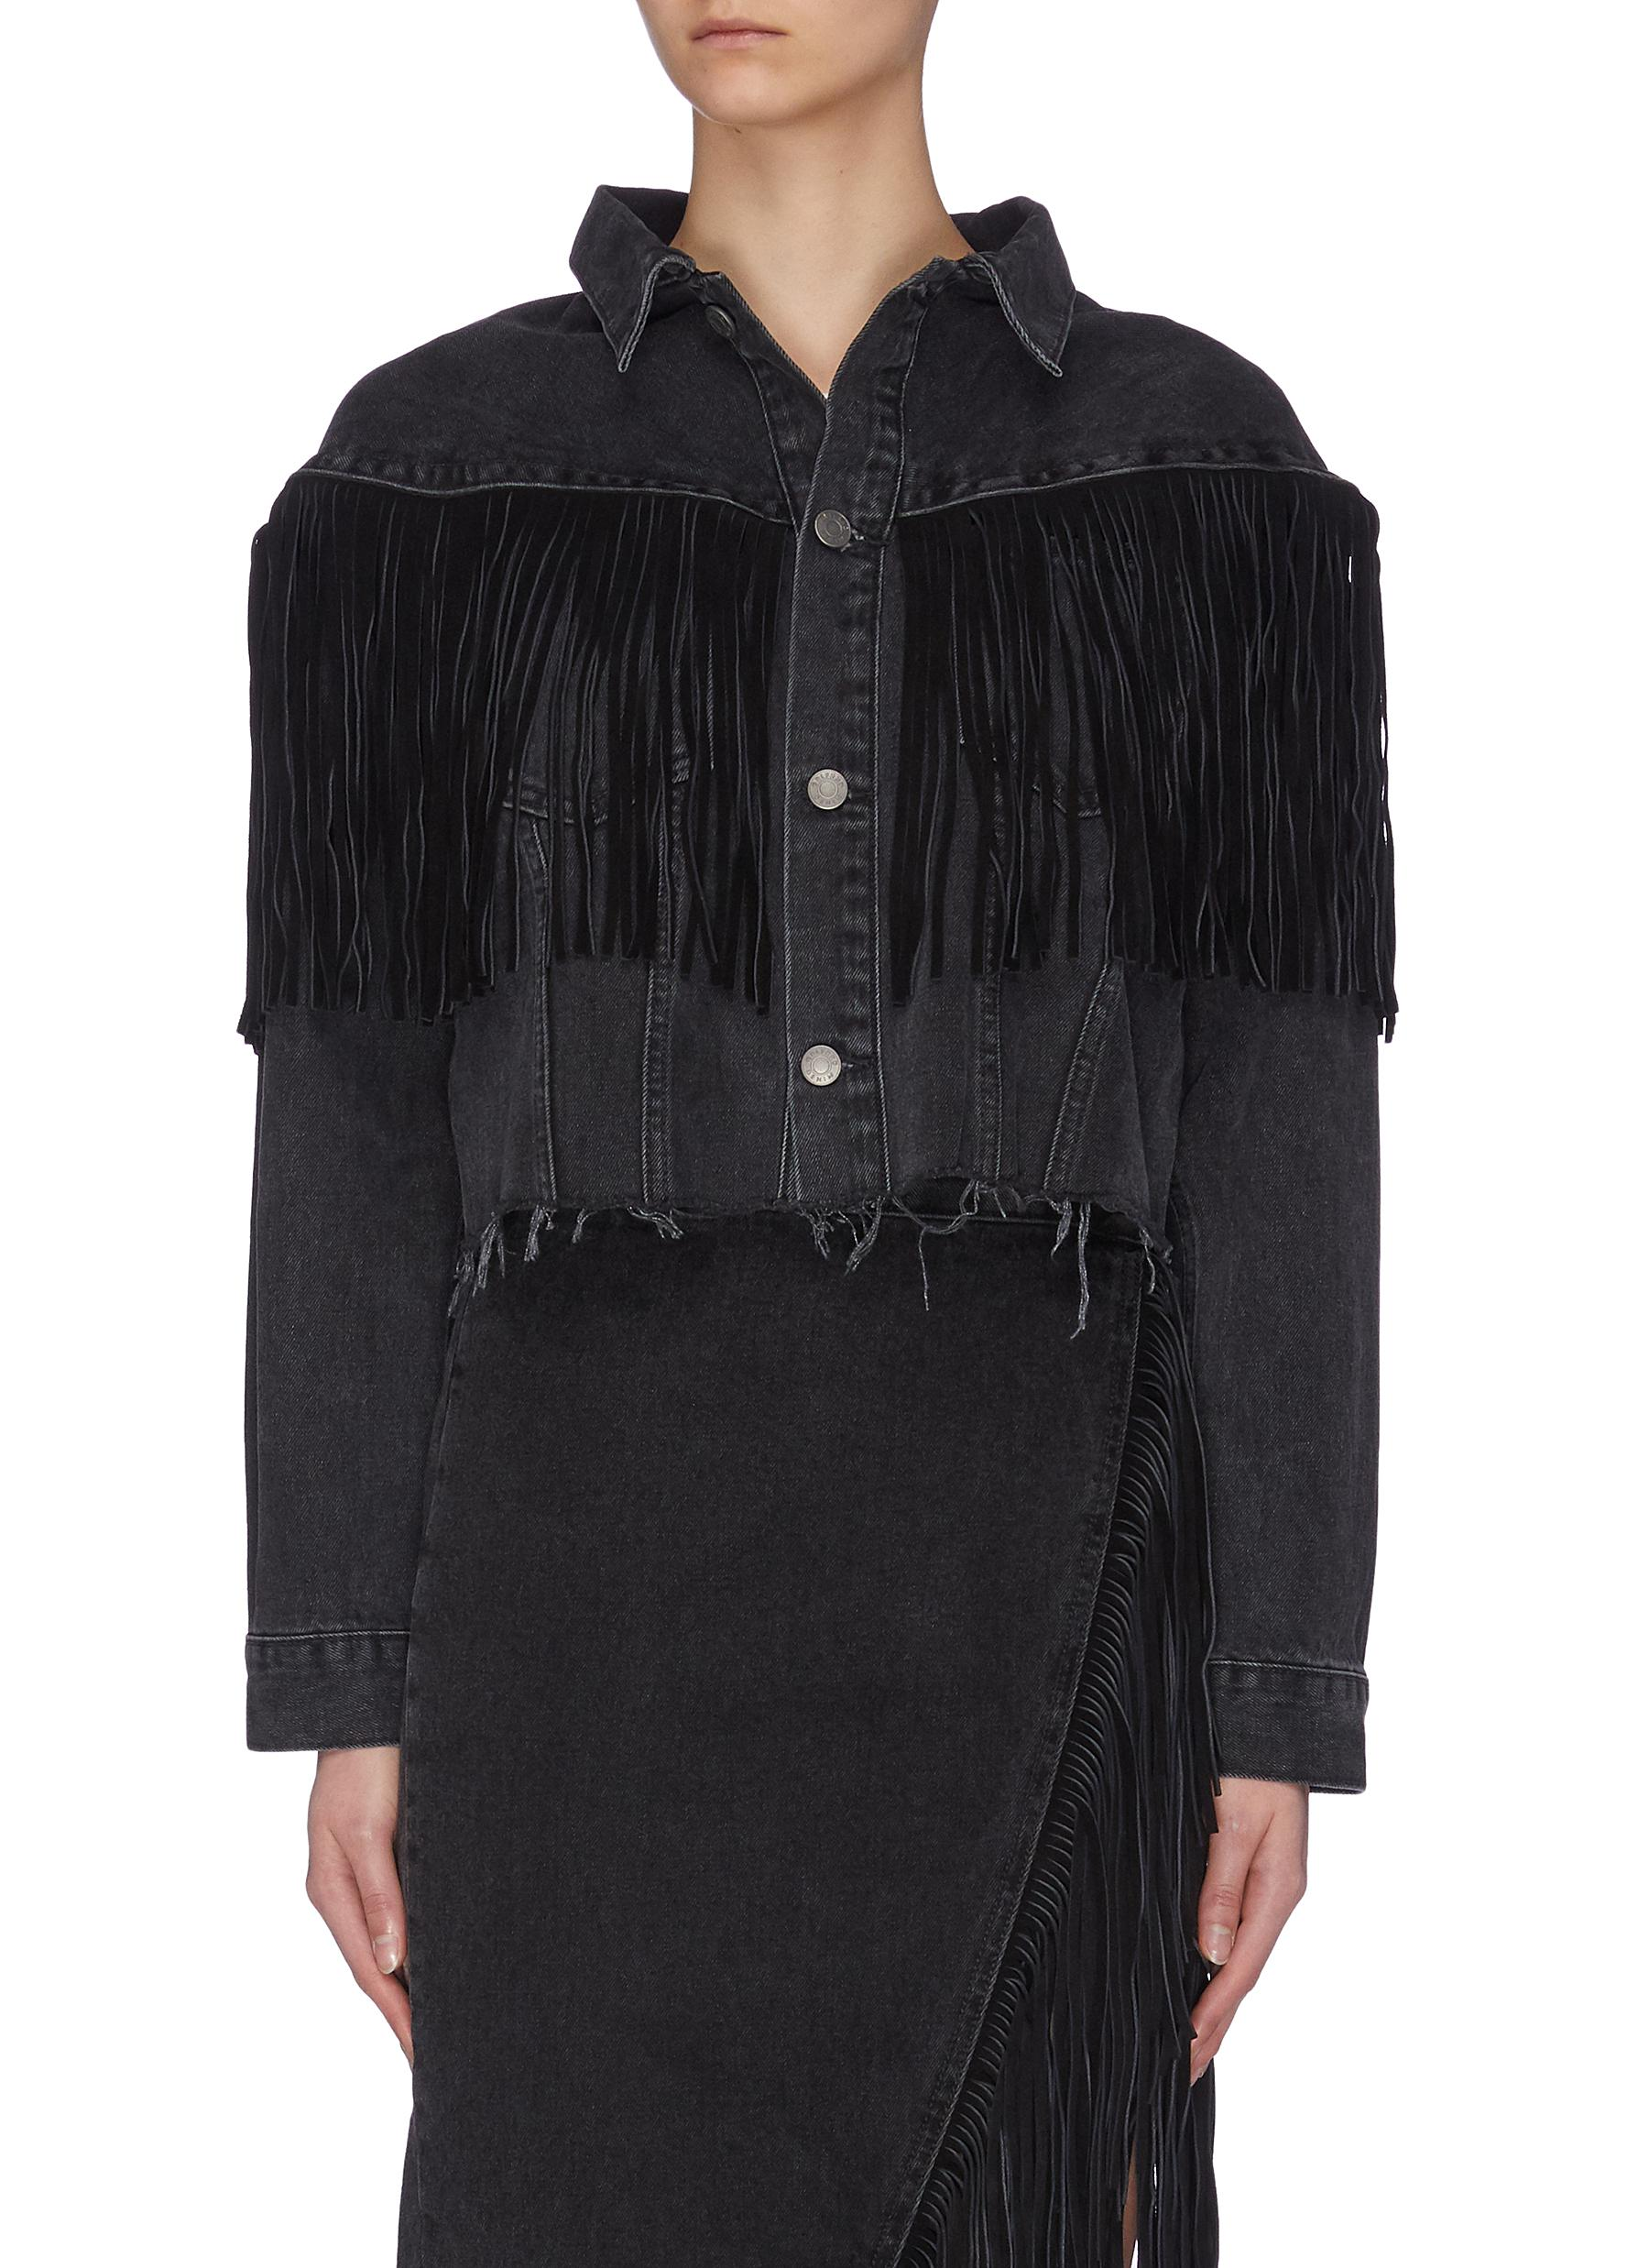 Buy Grlfrnd Jackets 'Freya' fringe crop jacket